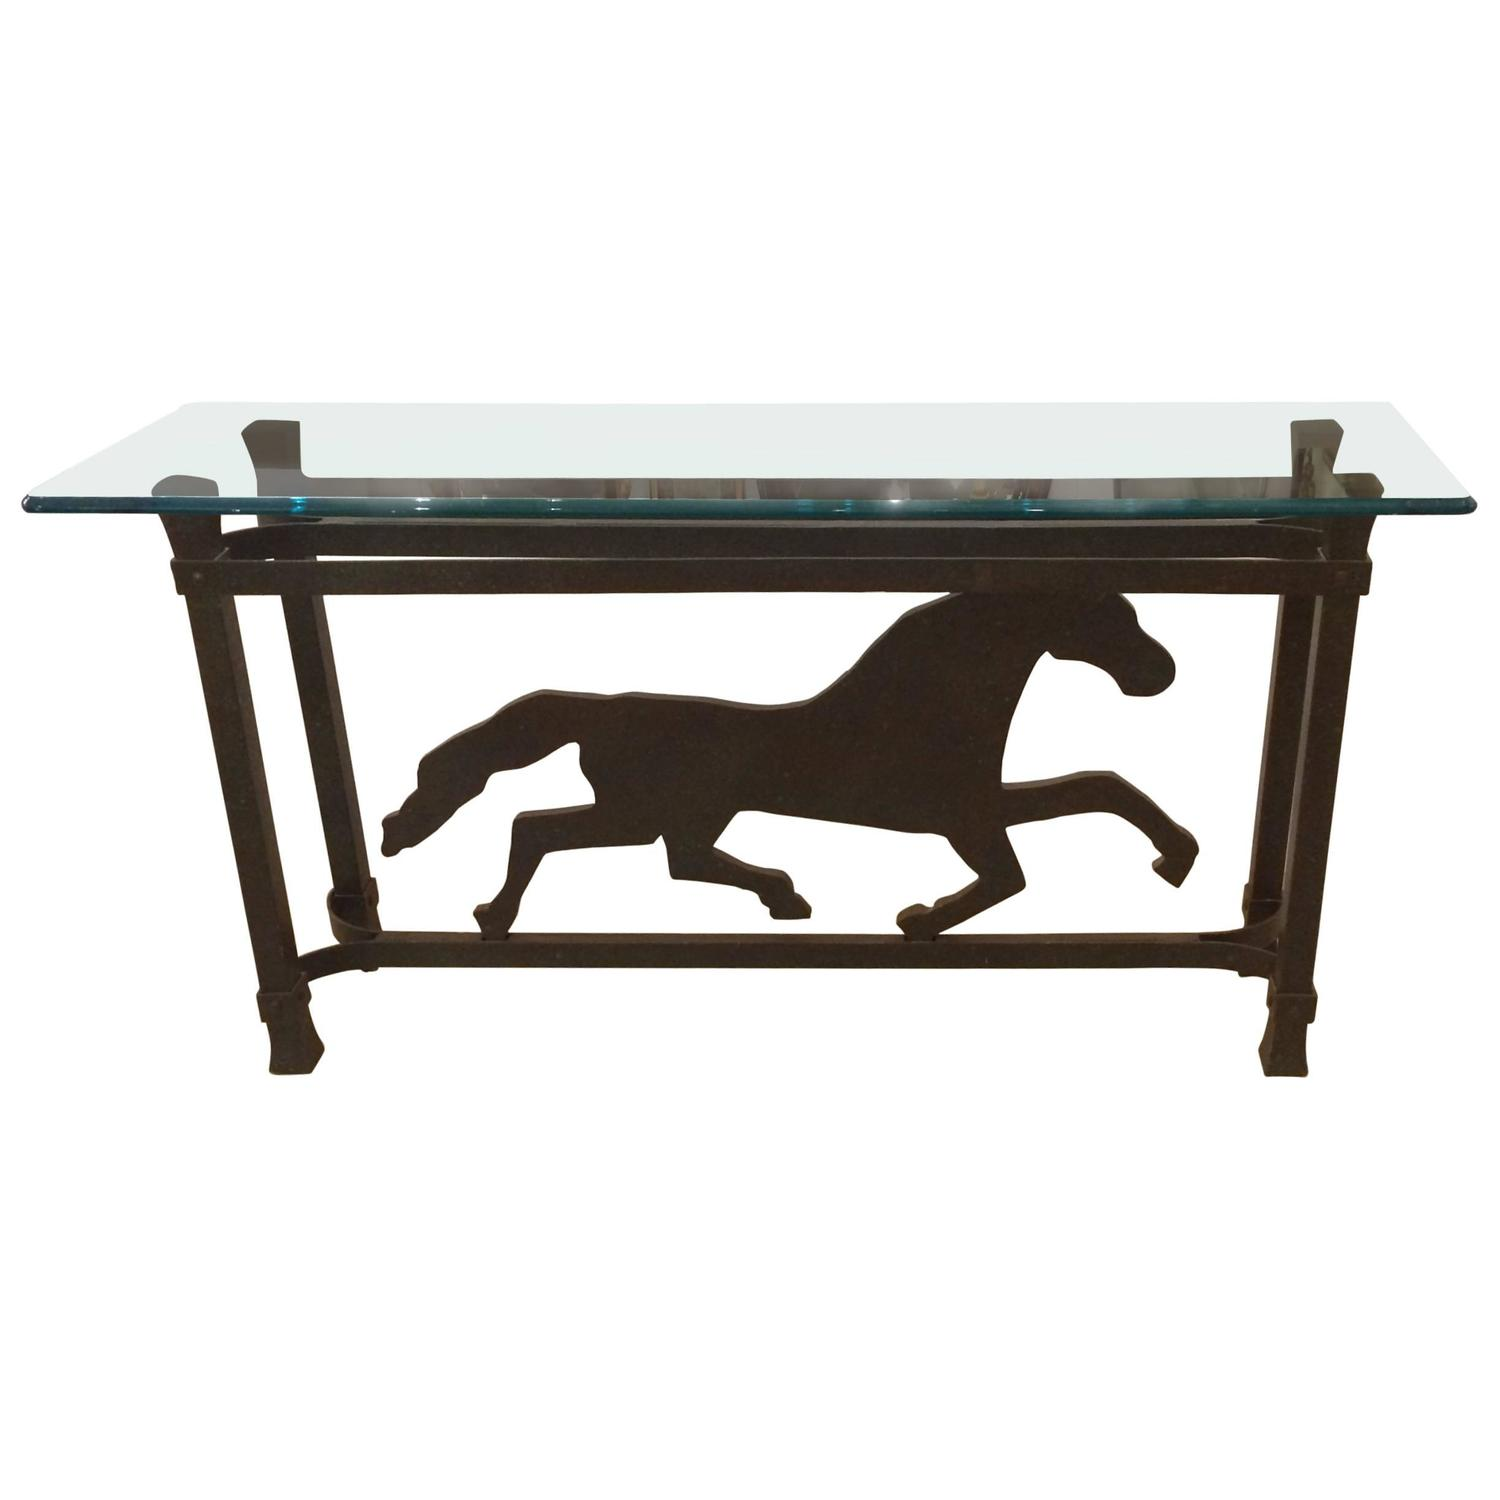 horse sofa table best leather sectional reviews unusual iron striding console at 1stdibs